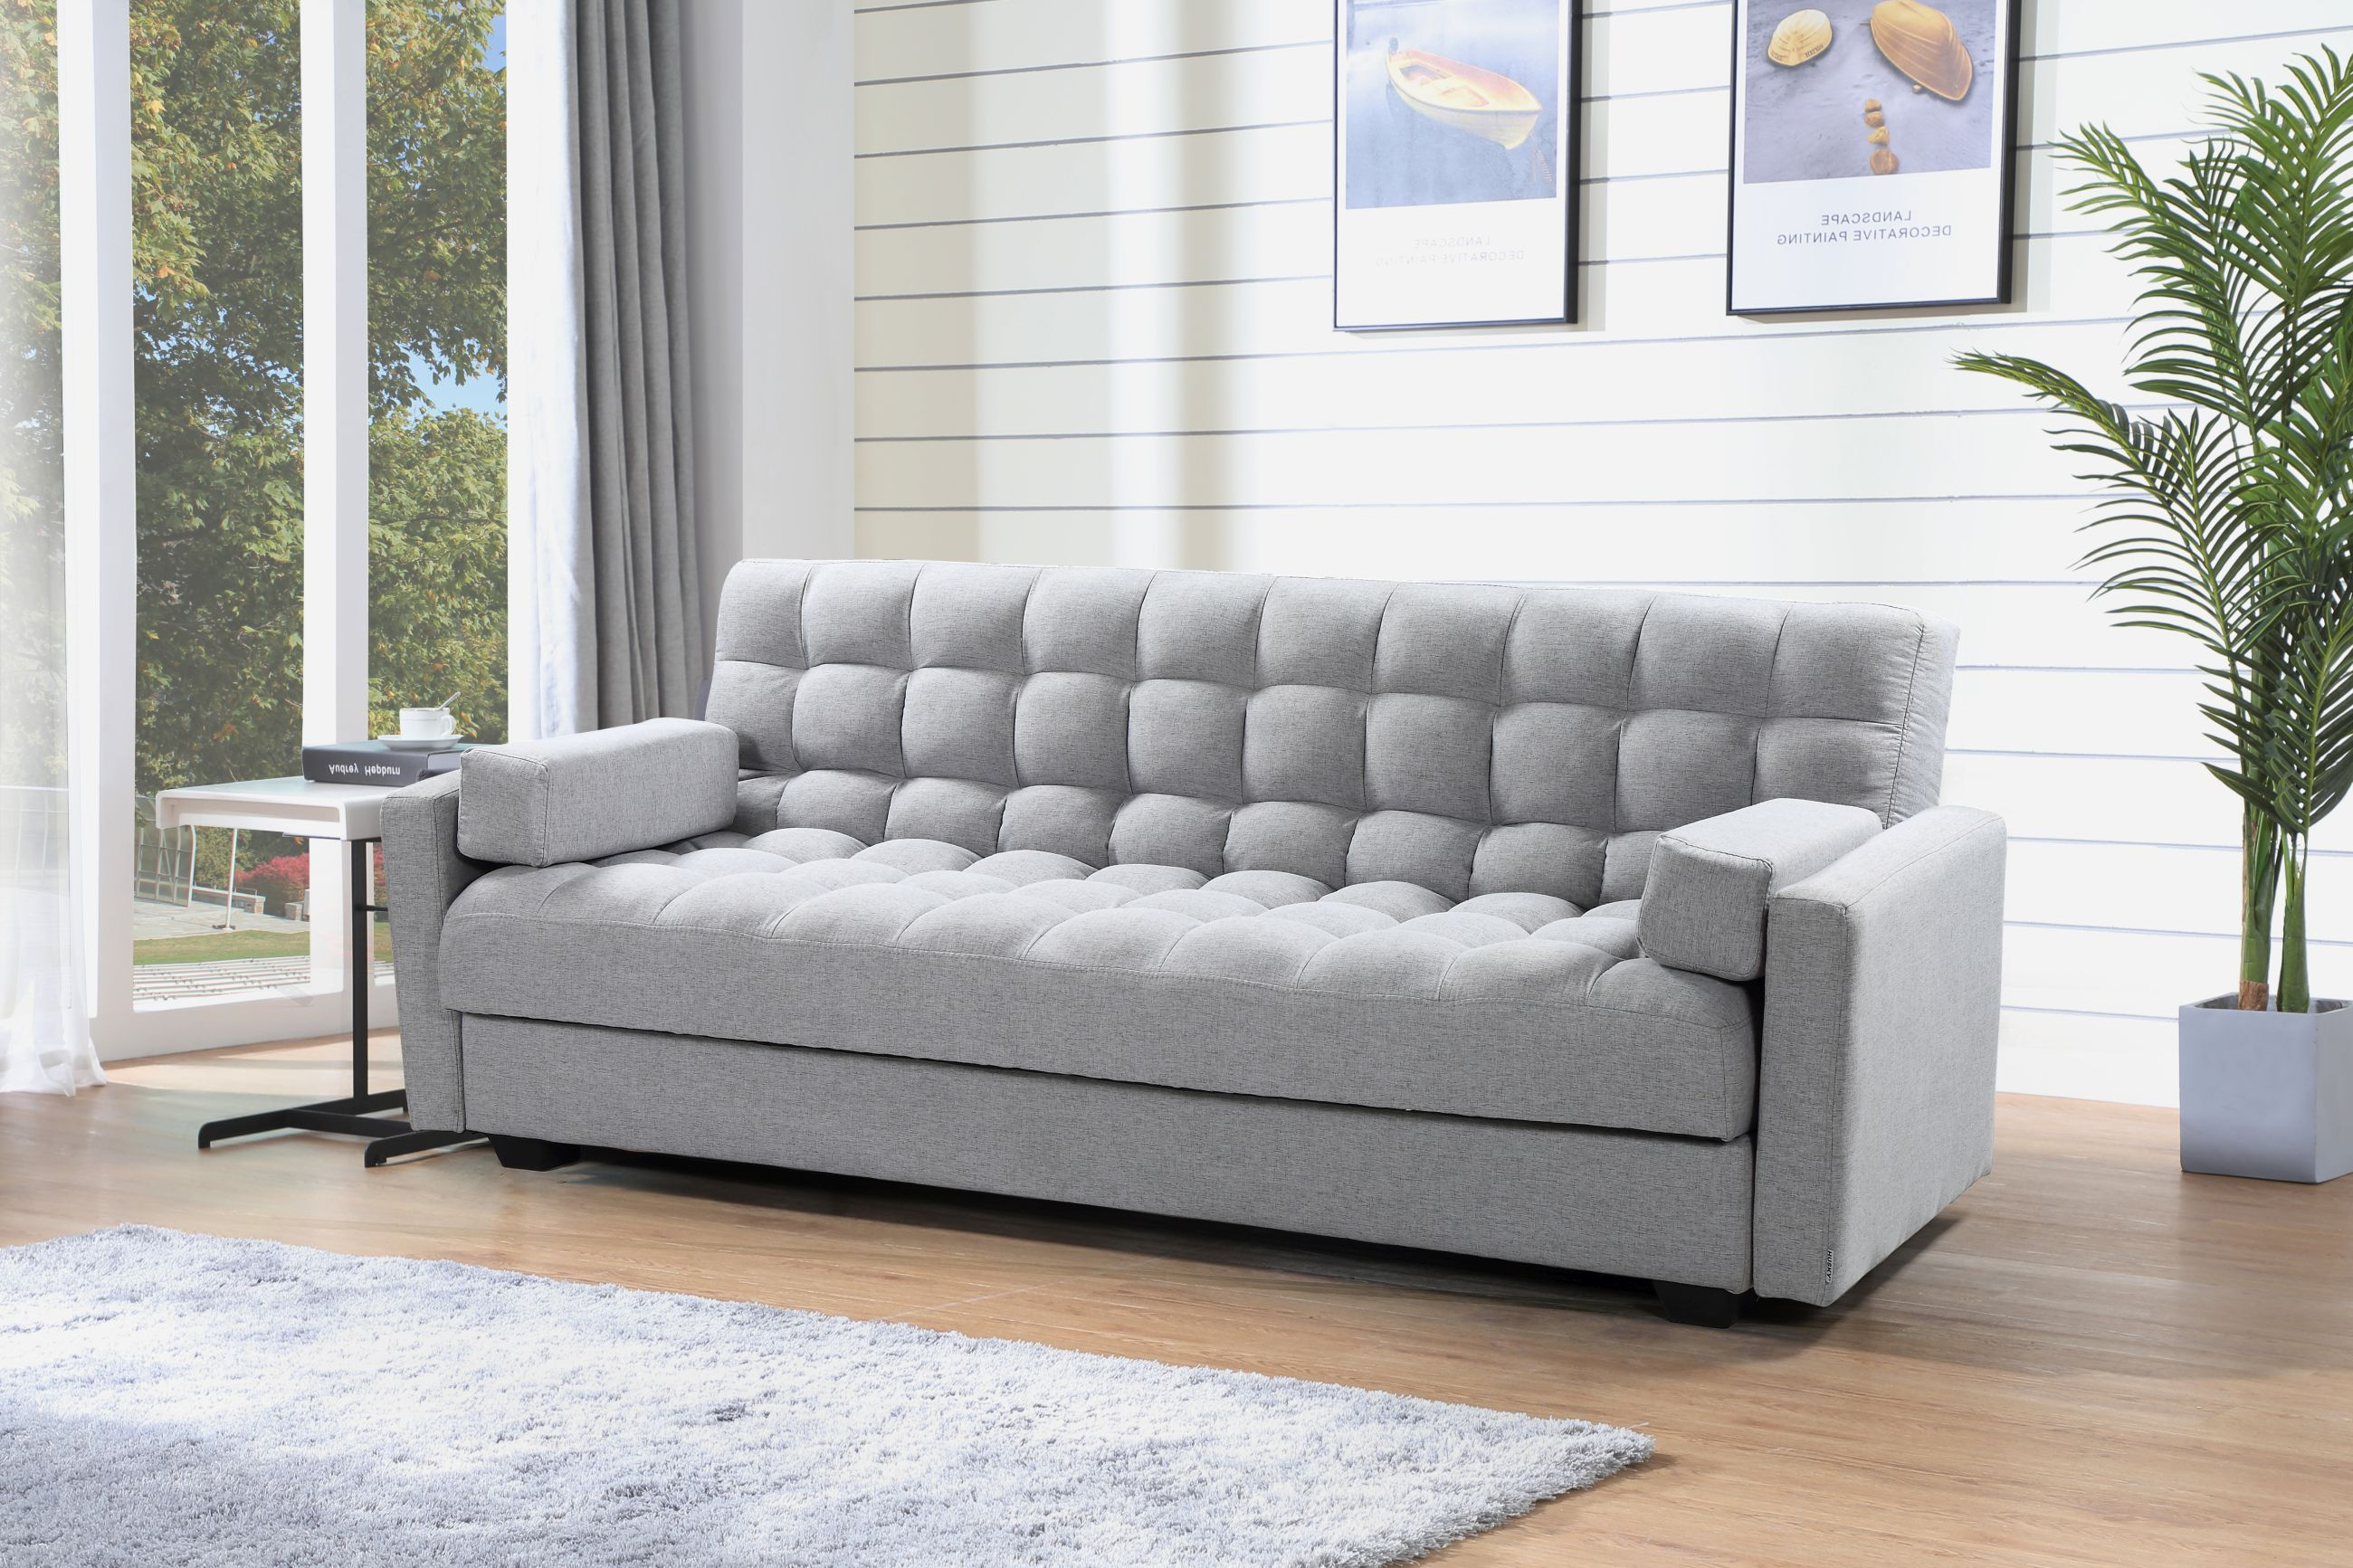 Peachy Sara Sofa Bed 3 In 1 Sofa Bed Storage Grey Theyellowbook Wood Chair Design Ideas Theyellowbookinfo